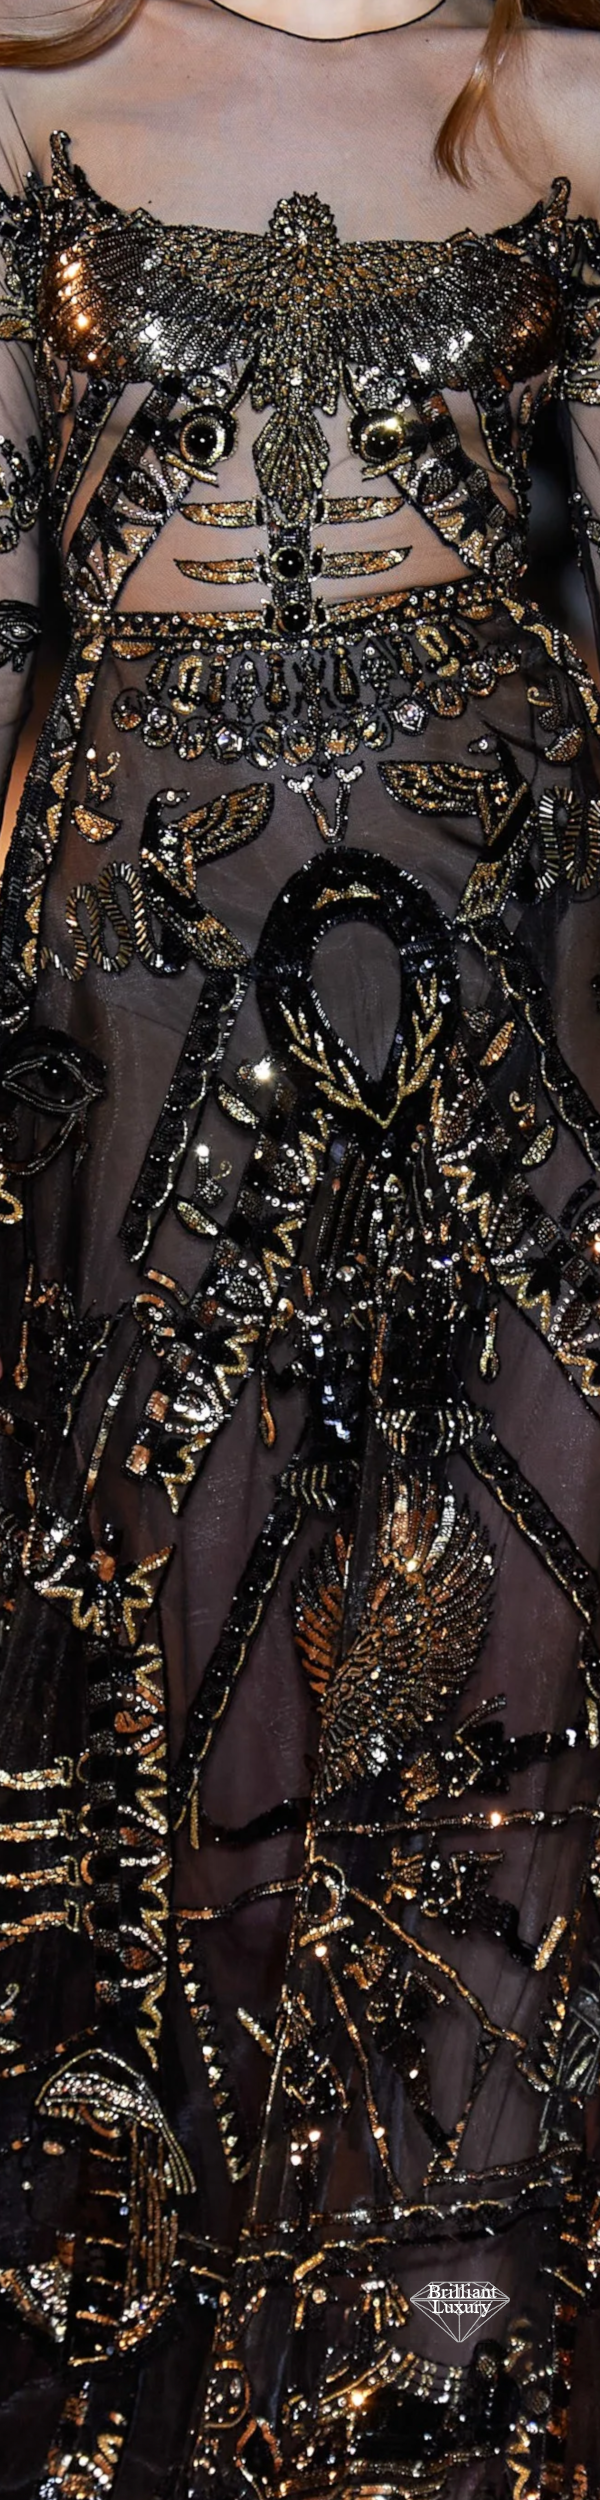 Zuhair Murad Spring 2020 Couture Embroidered Egyptian Black Gown #fashion